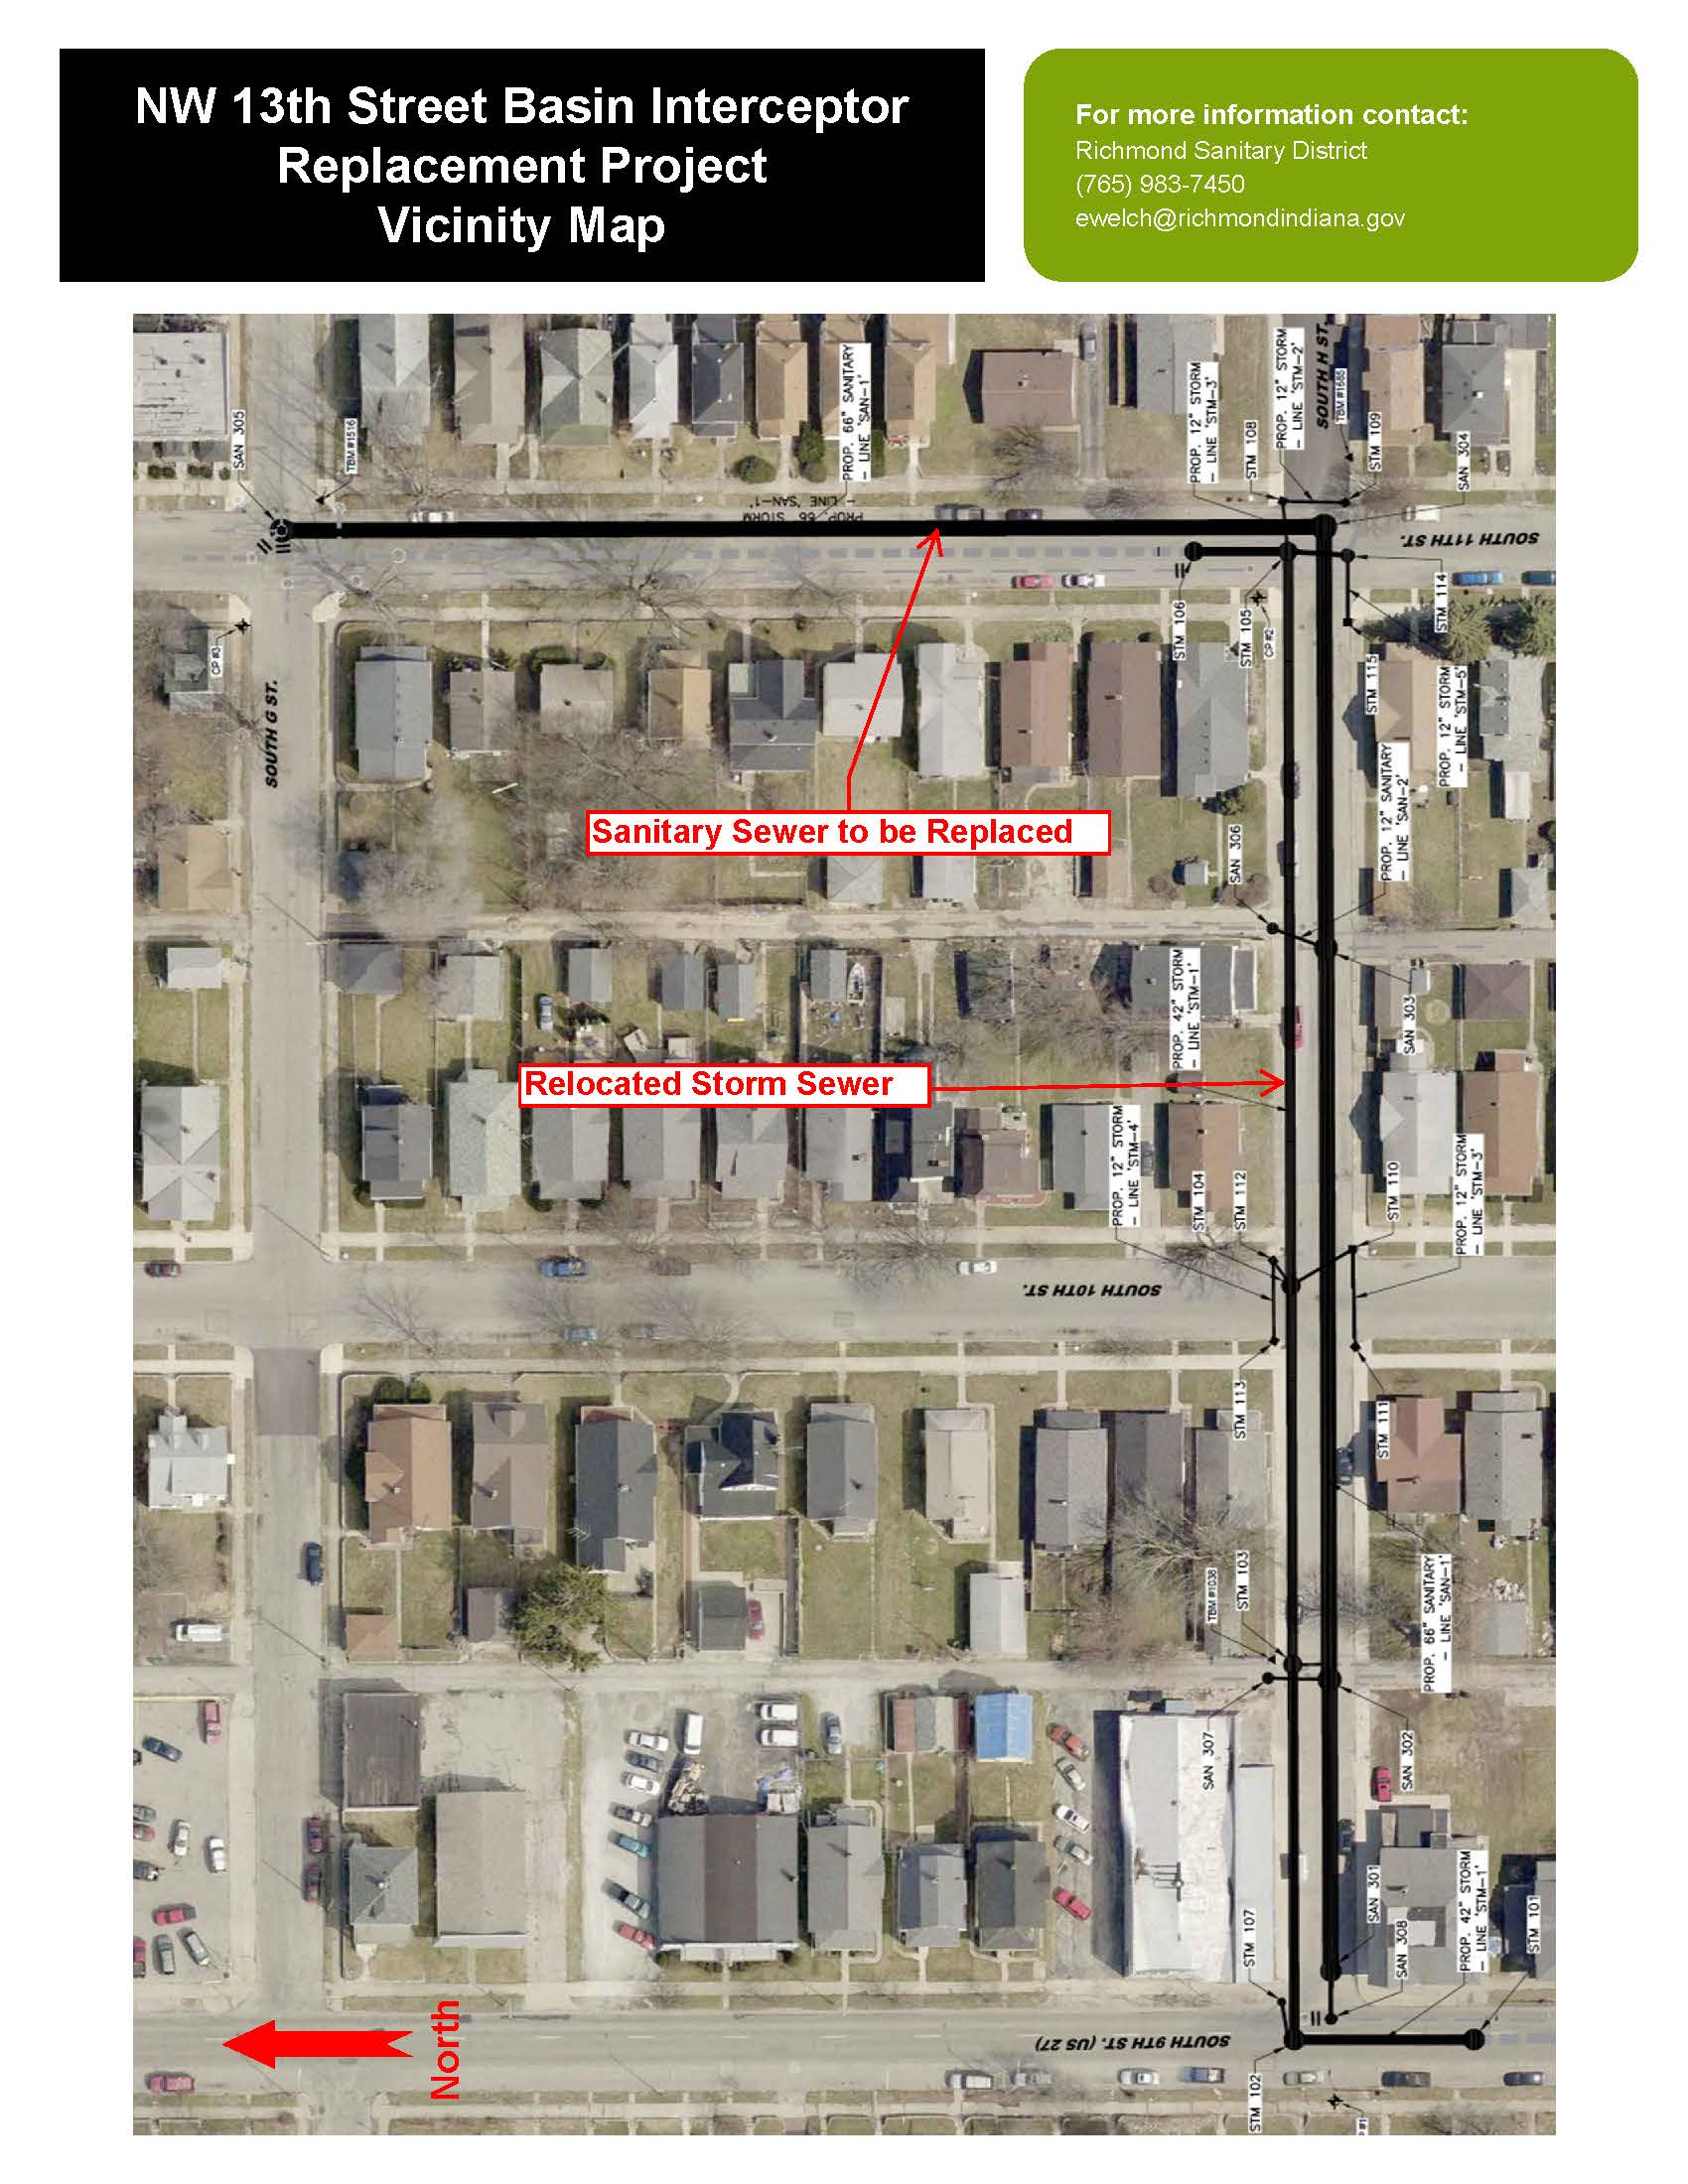 NW 13th Street Basin Interceptor Replacement Project Vicinity Map